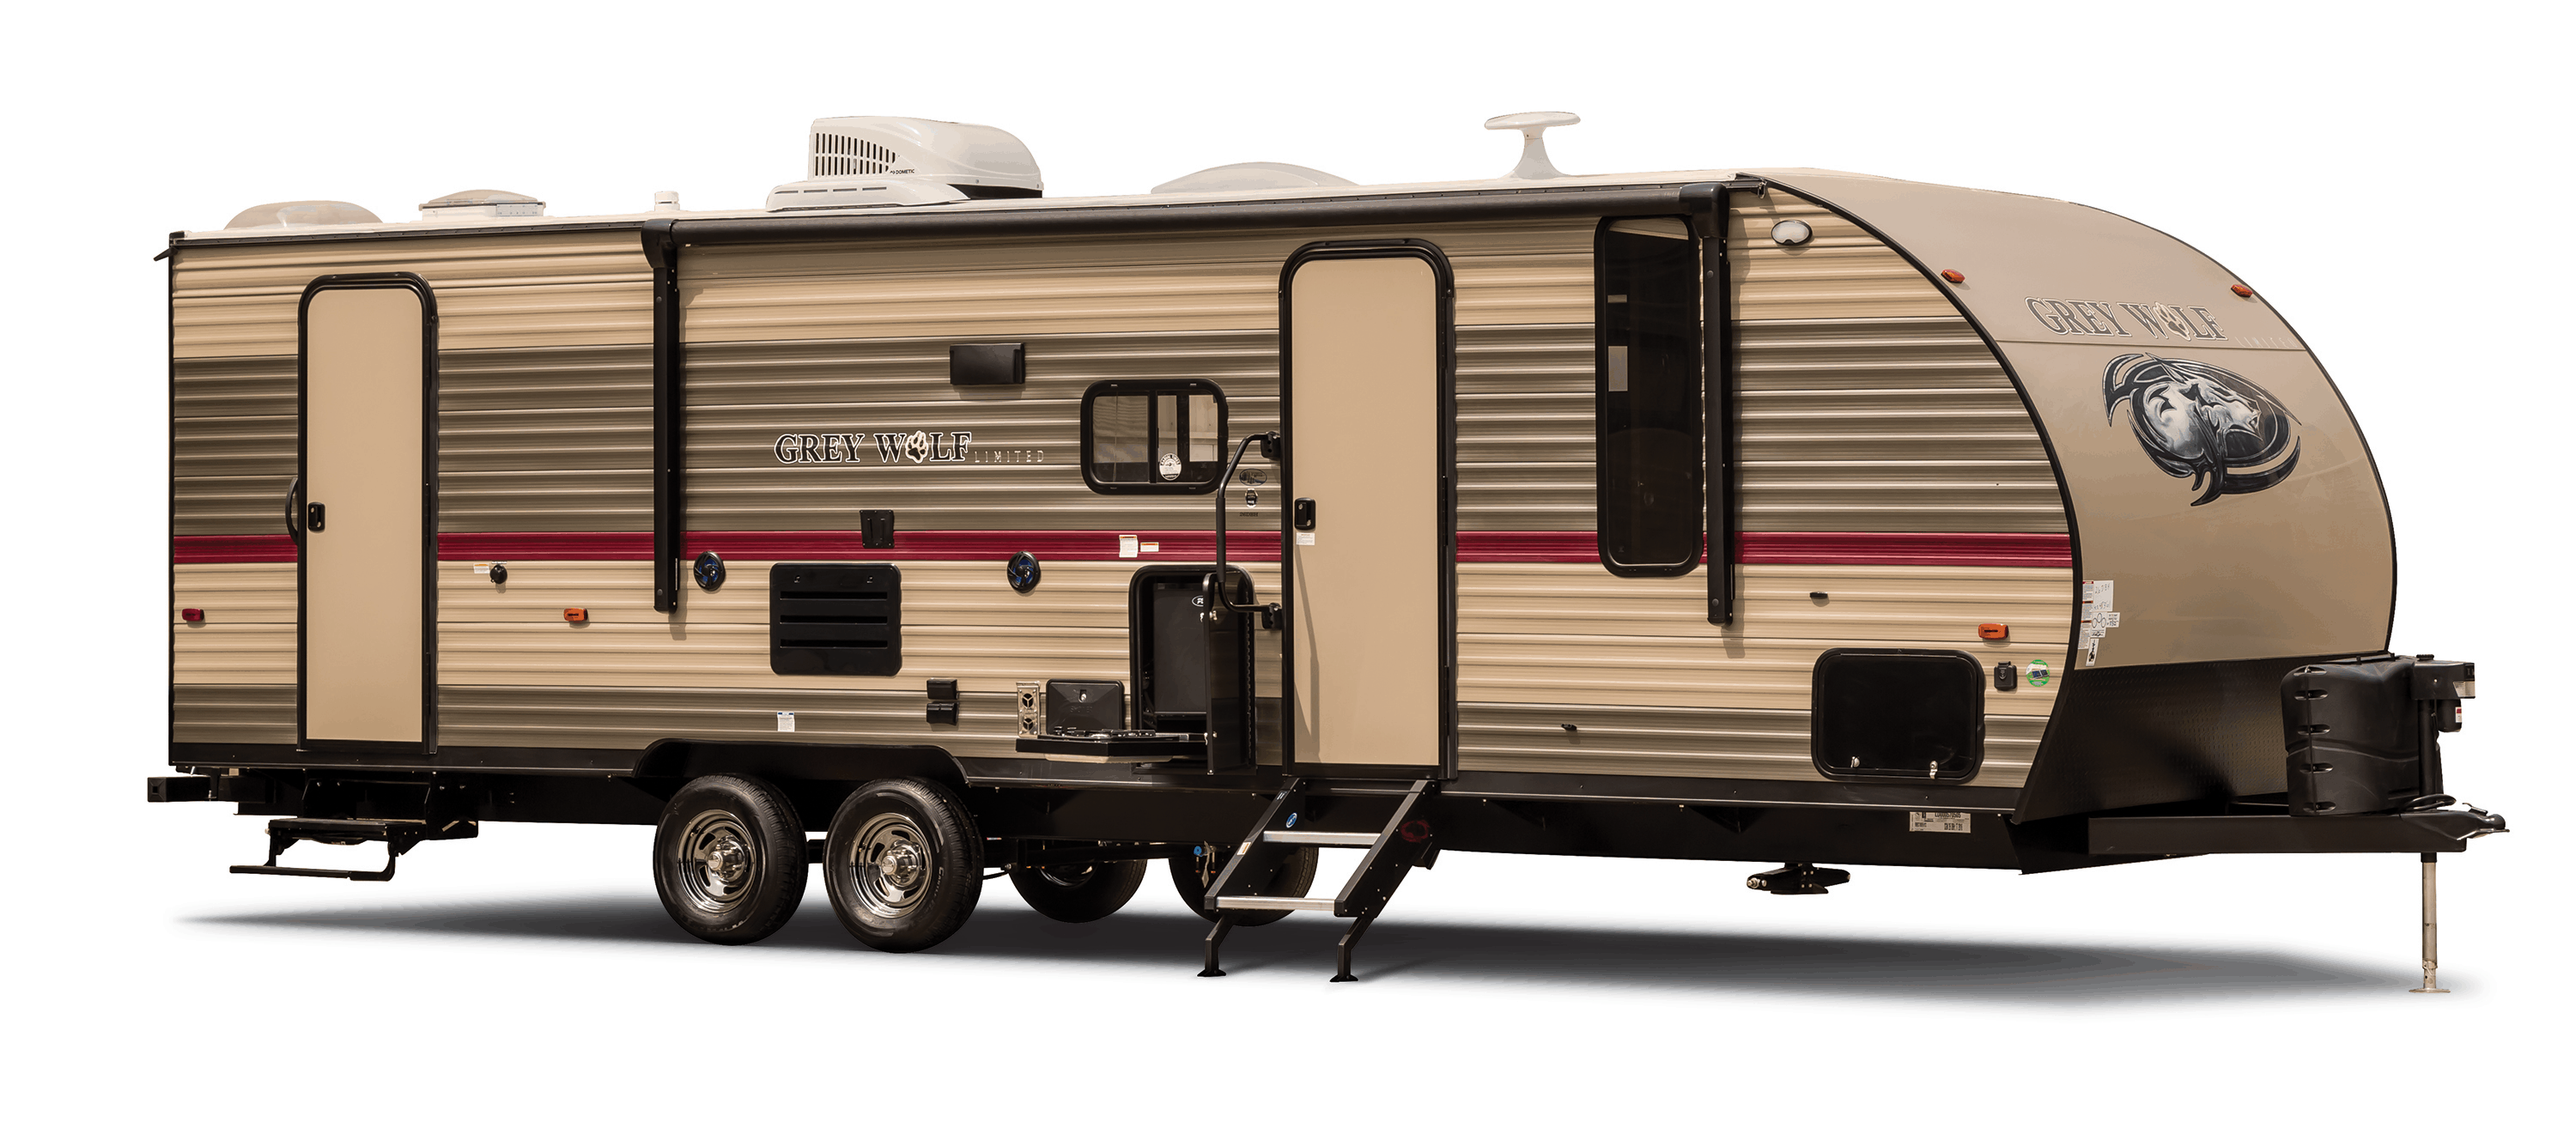 Grey Wolf Travel Trailer